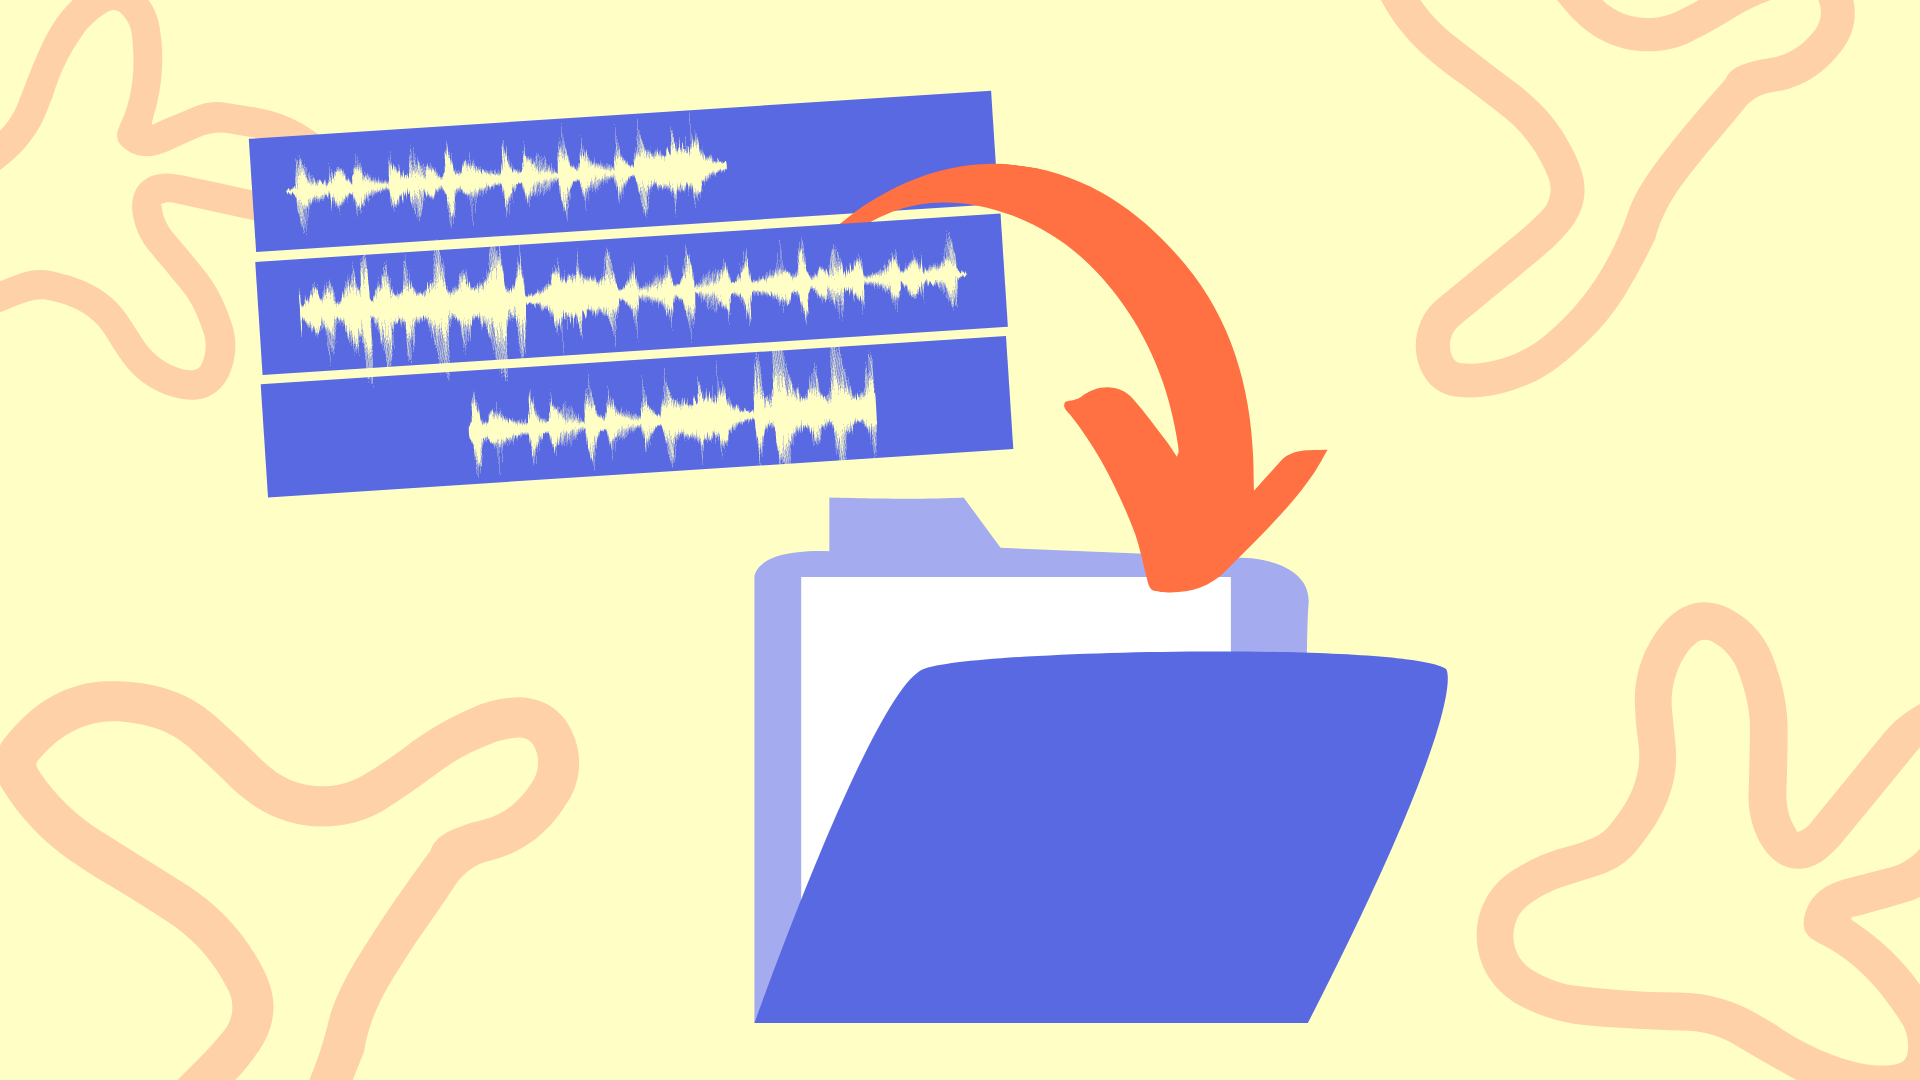 How to Combine Multiple Audio Files Online